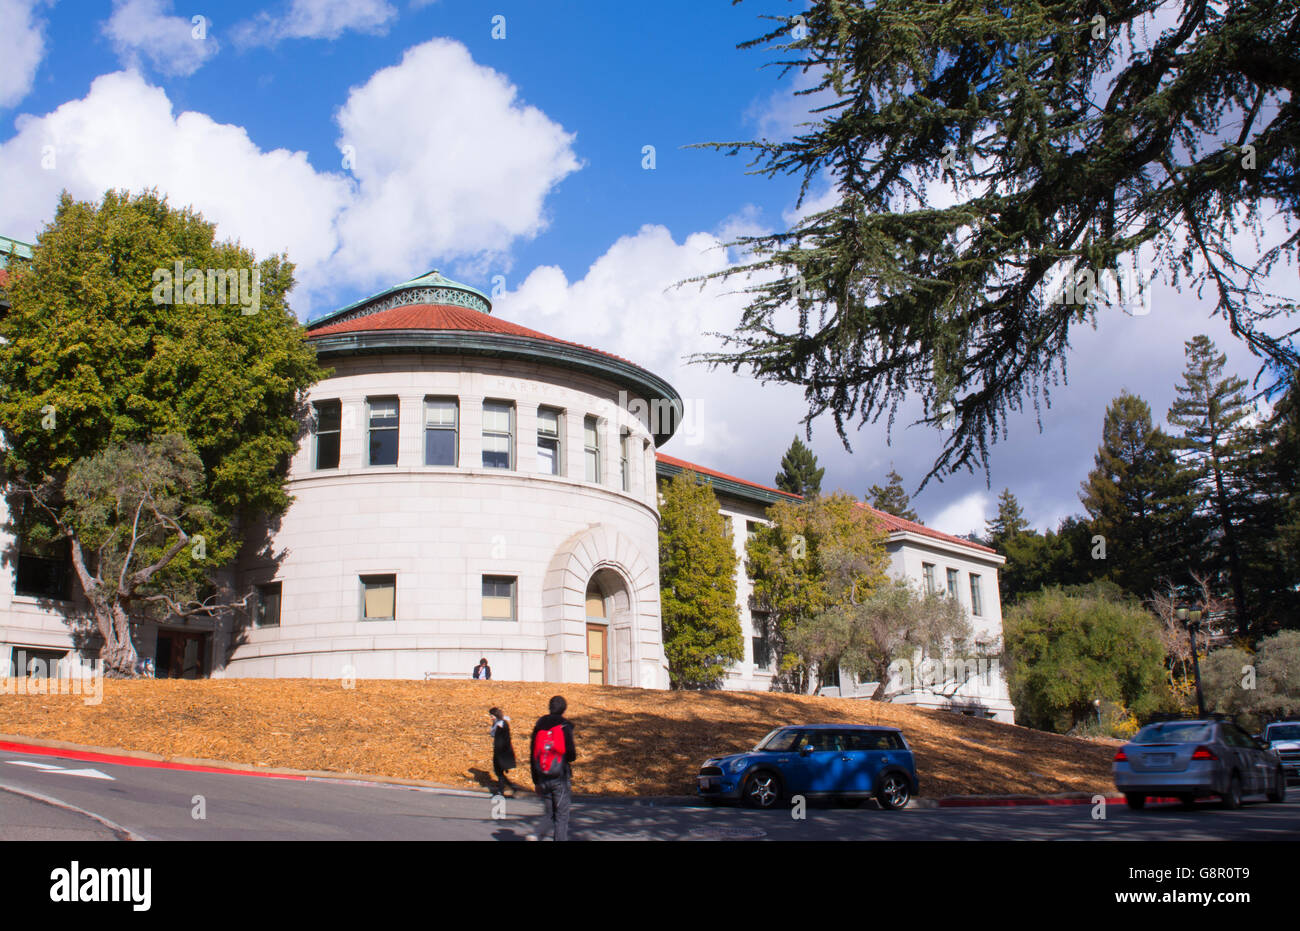 University of California at Berkeley with students walking in front of Harry Wellman Hall on campus - Stock Image